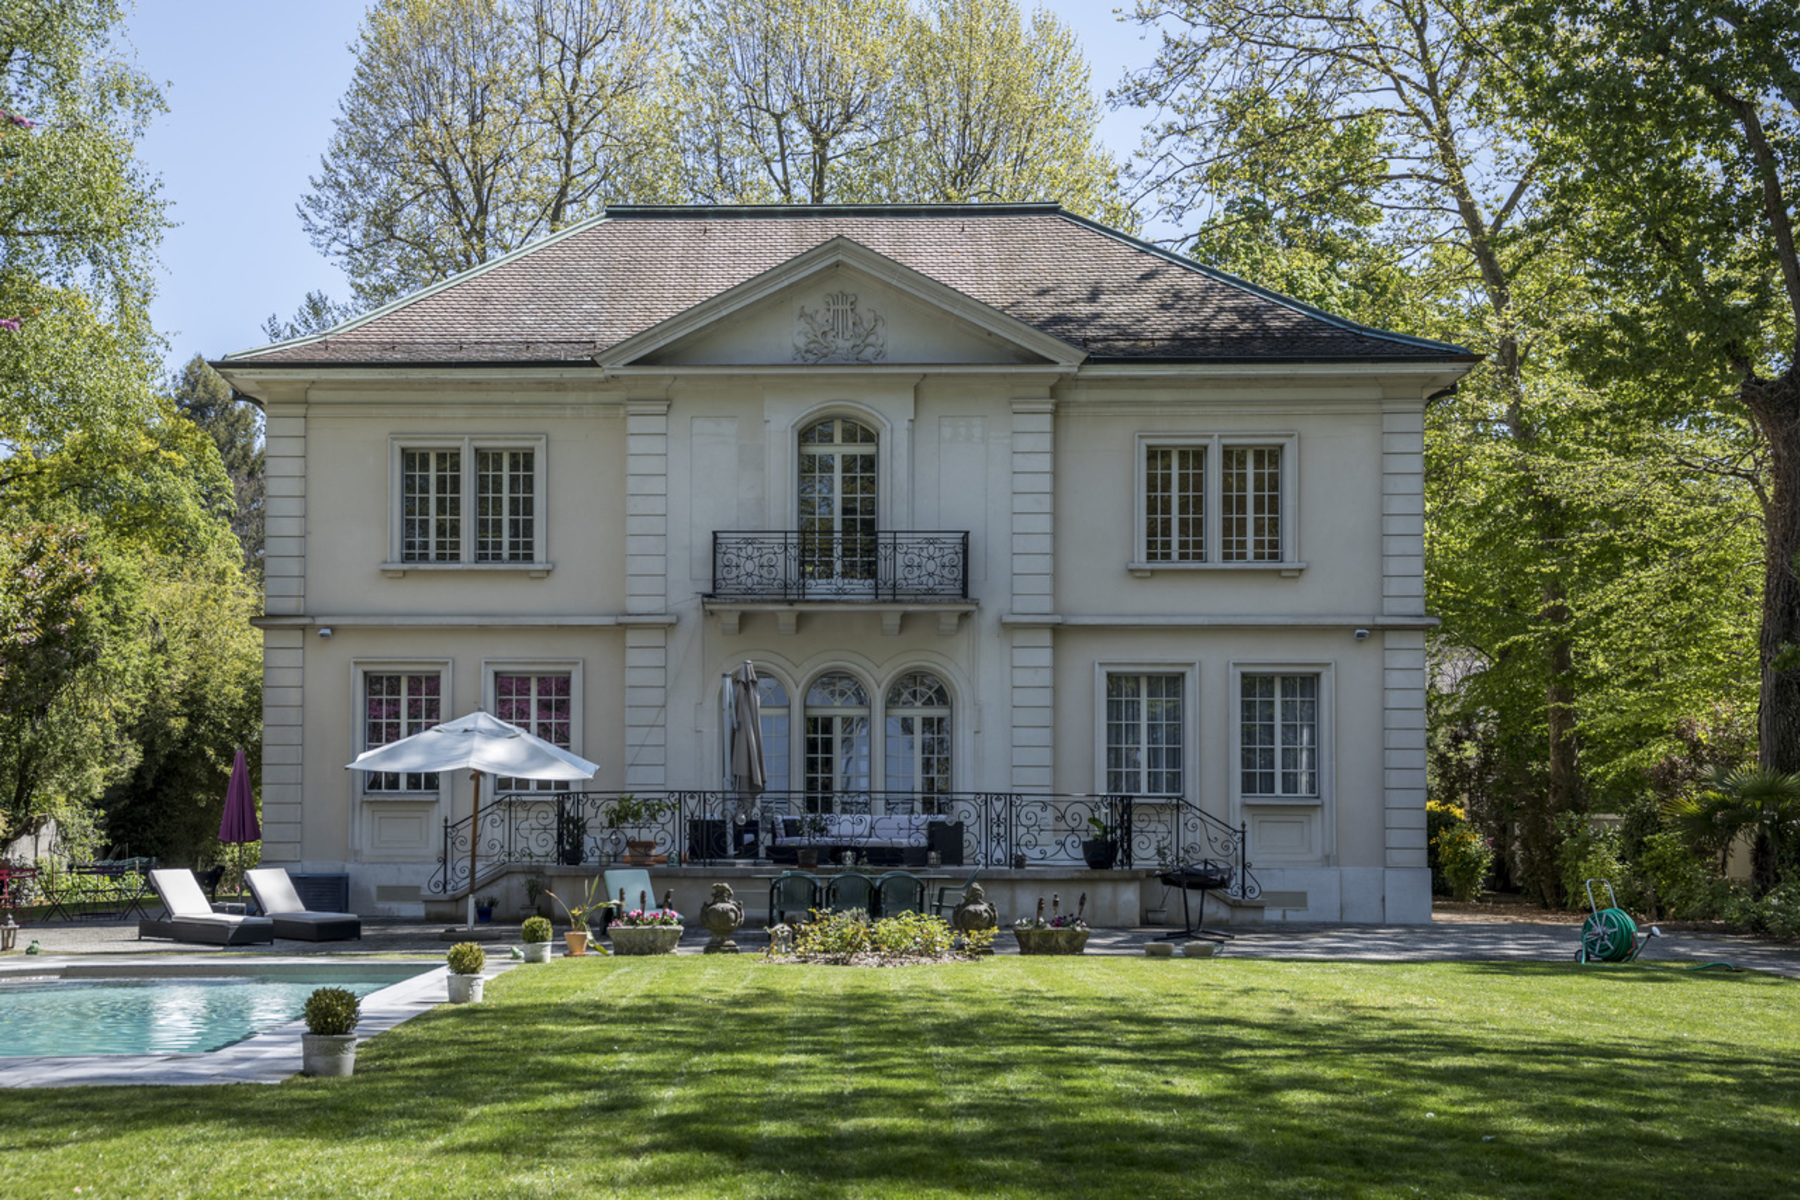 Single Family Home for Active at Stunning waterfront mansion Vésenaz Vesenaz, Geneva 1222 Switzerland